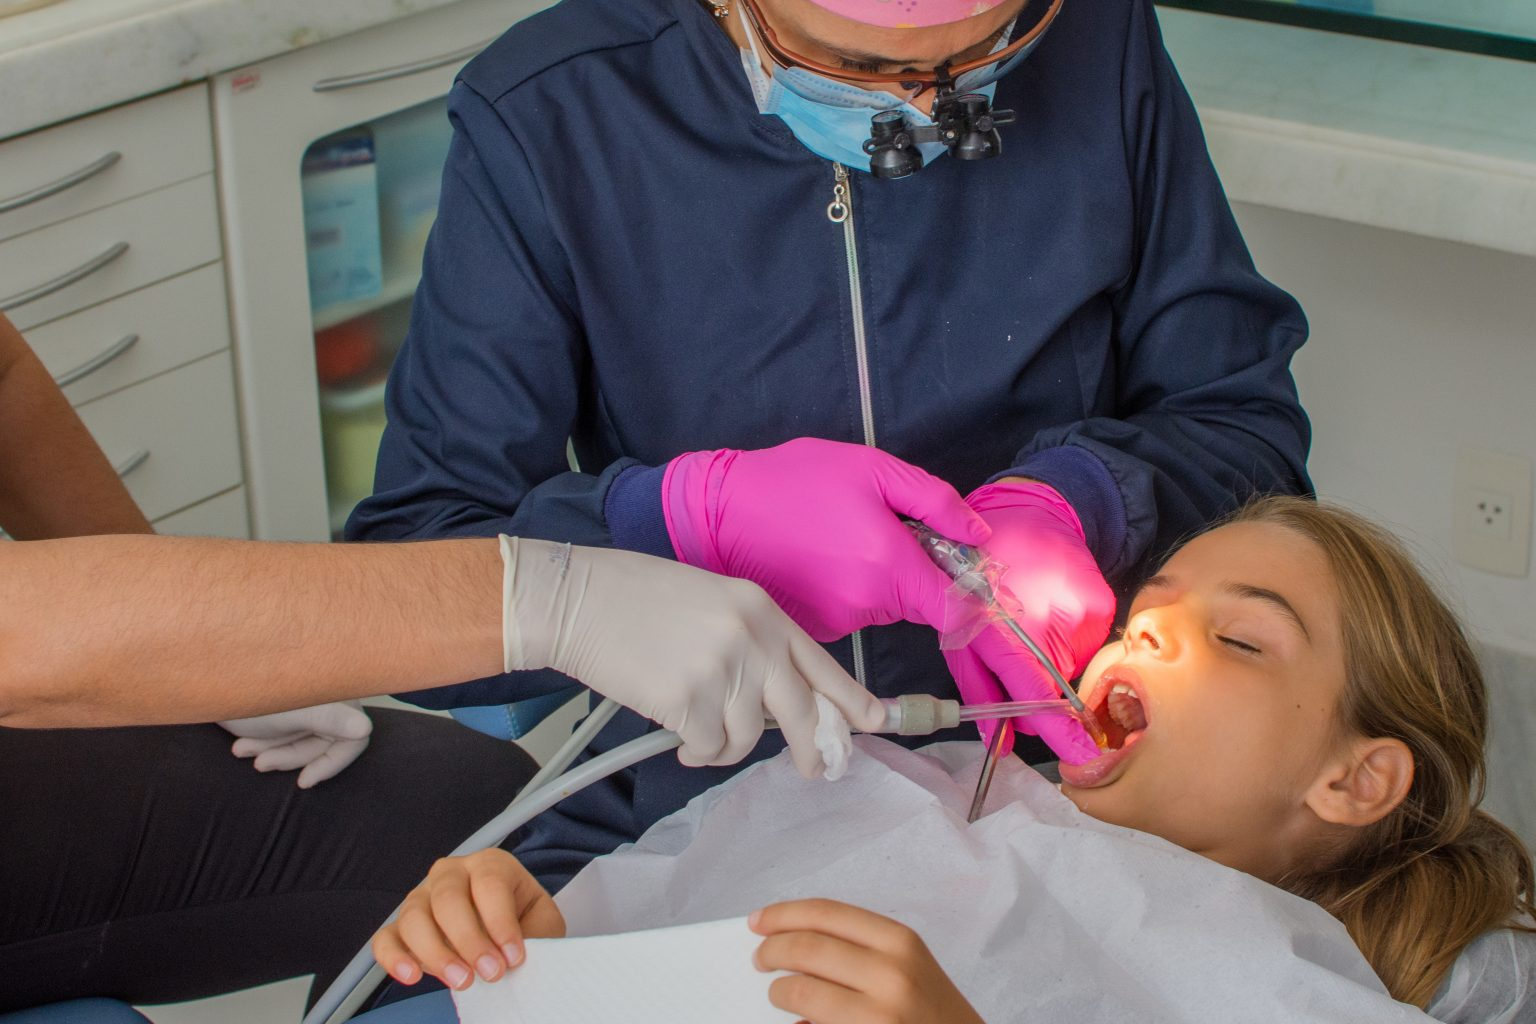 Child Girl In Specialized Dental Treatment As Routine